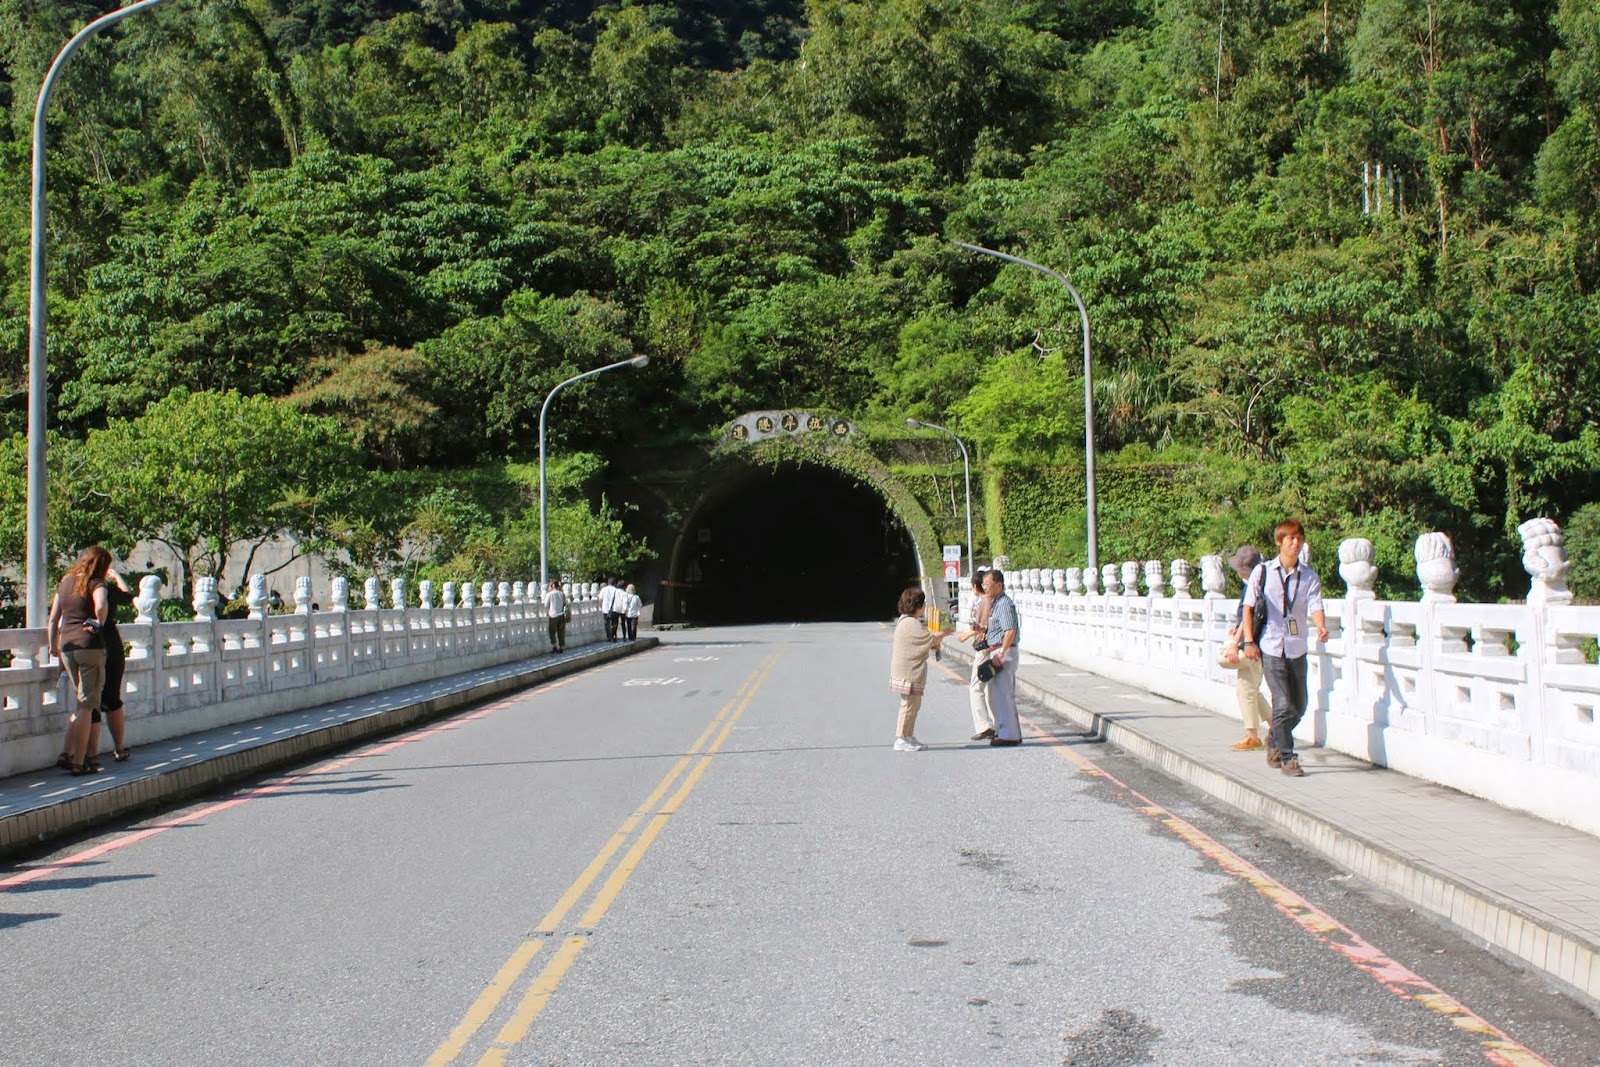 This is the main road to drive along the marble bridge before heading into the tunnel to explore more Taroko Gorge National Park in Hualien, Taiwan